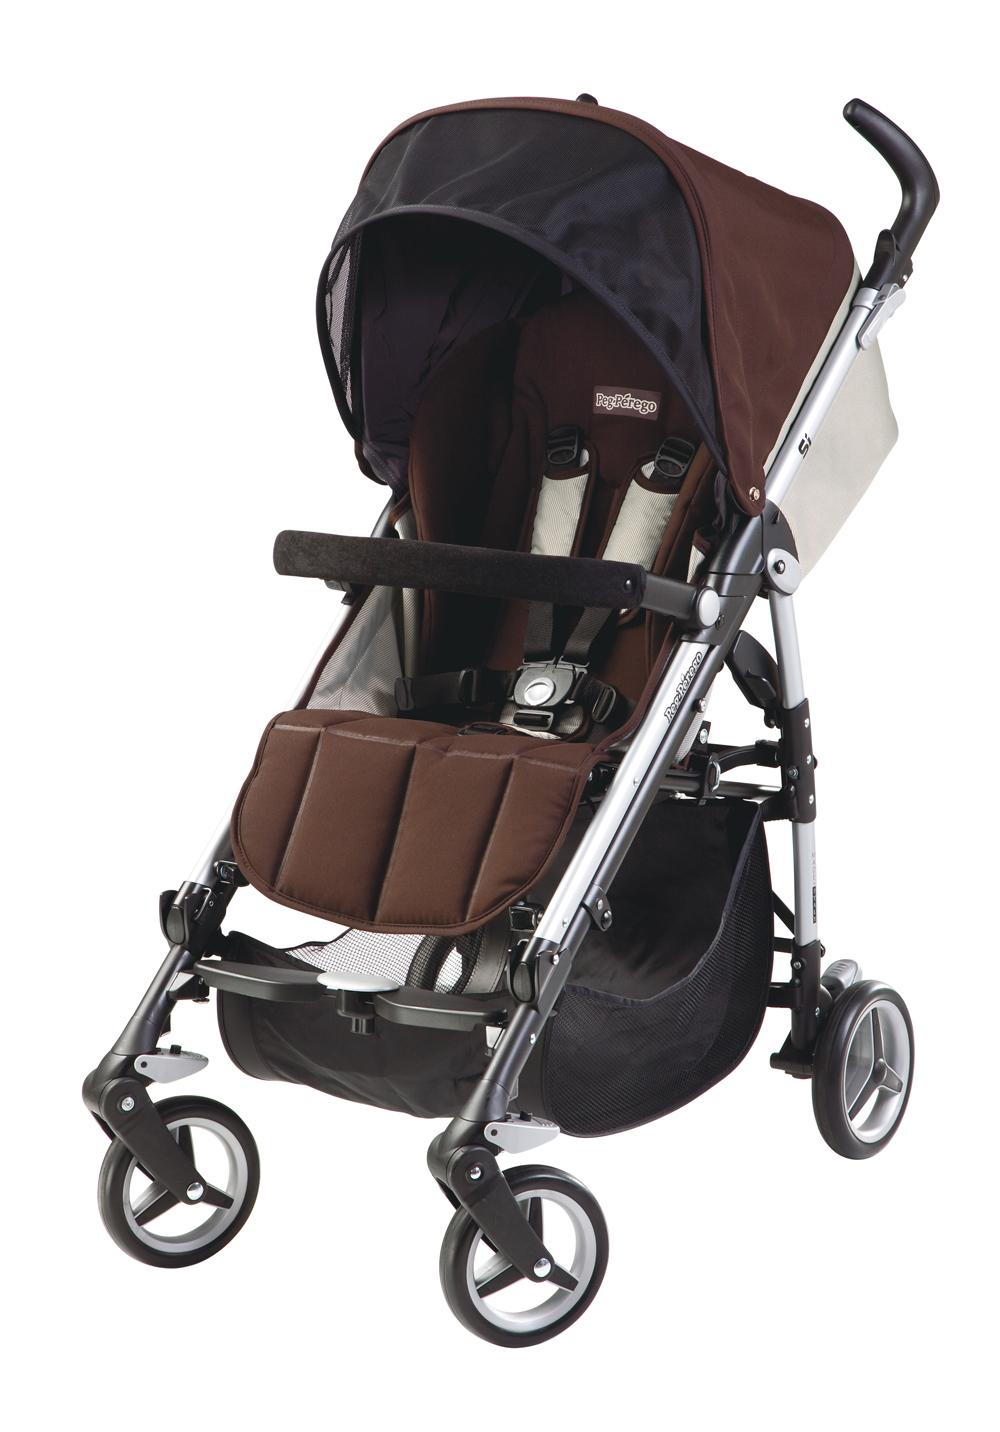 peg perego strollers free shipping no tax always reviews. Black Bedroom Furniture Sets. Home Design Ideas